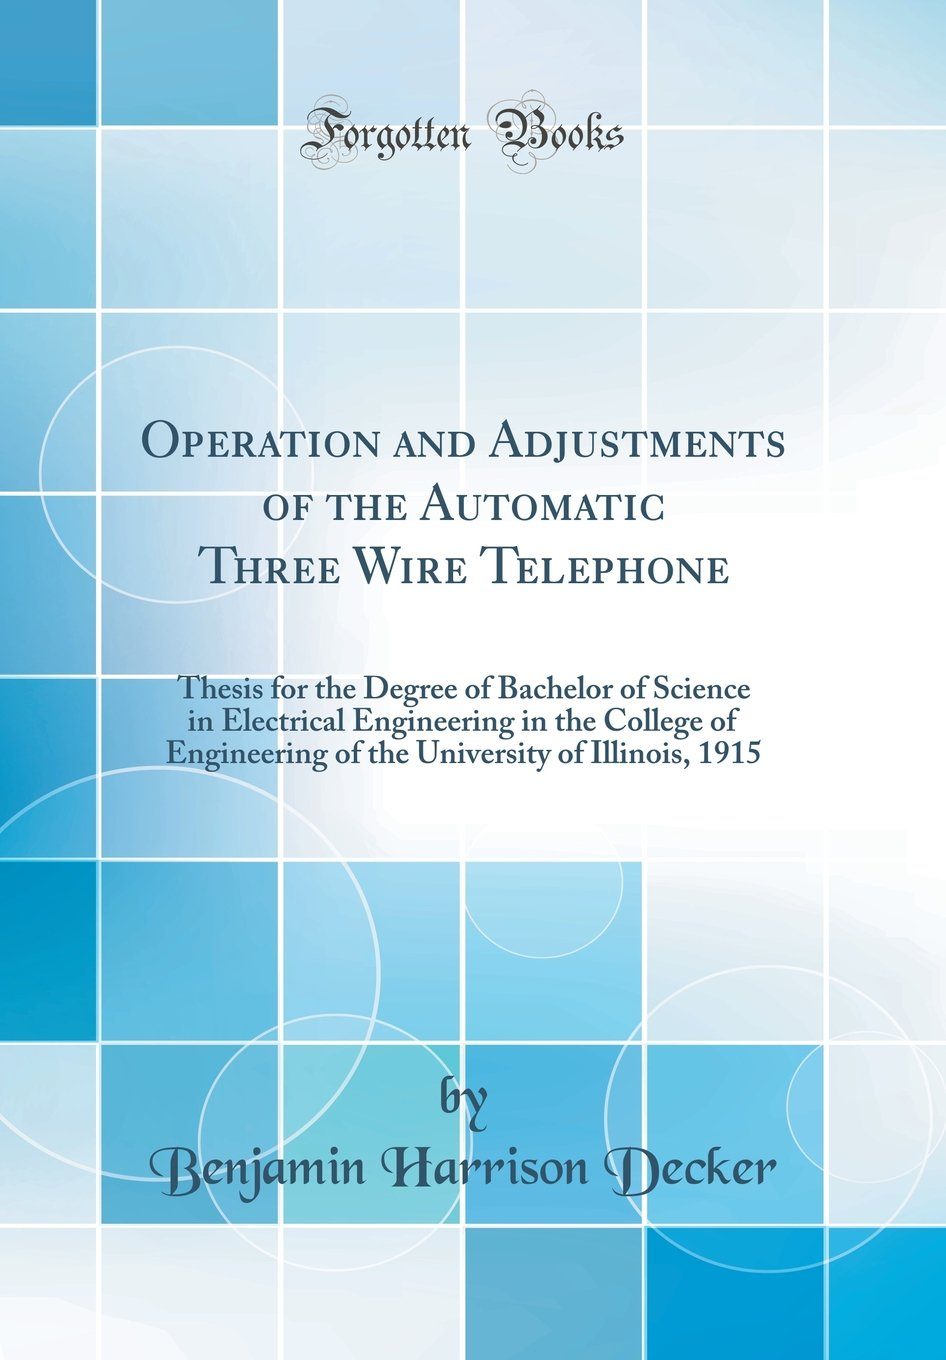 Operation and Adjustments of the Automatic Three Wire Telephone ...